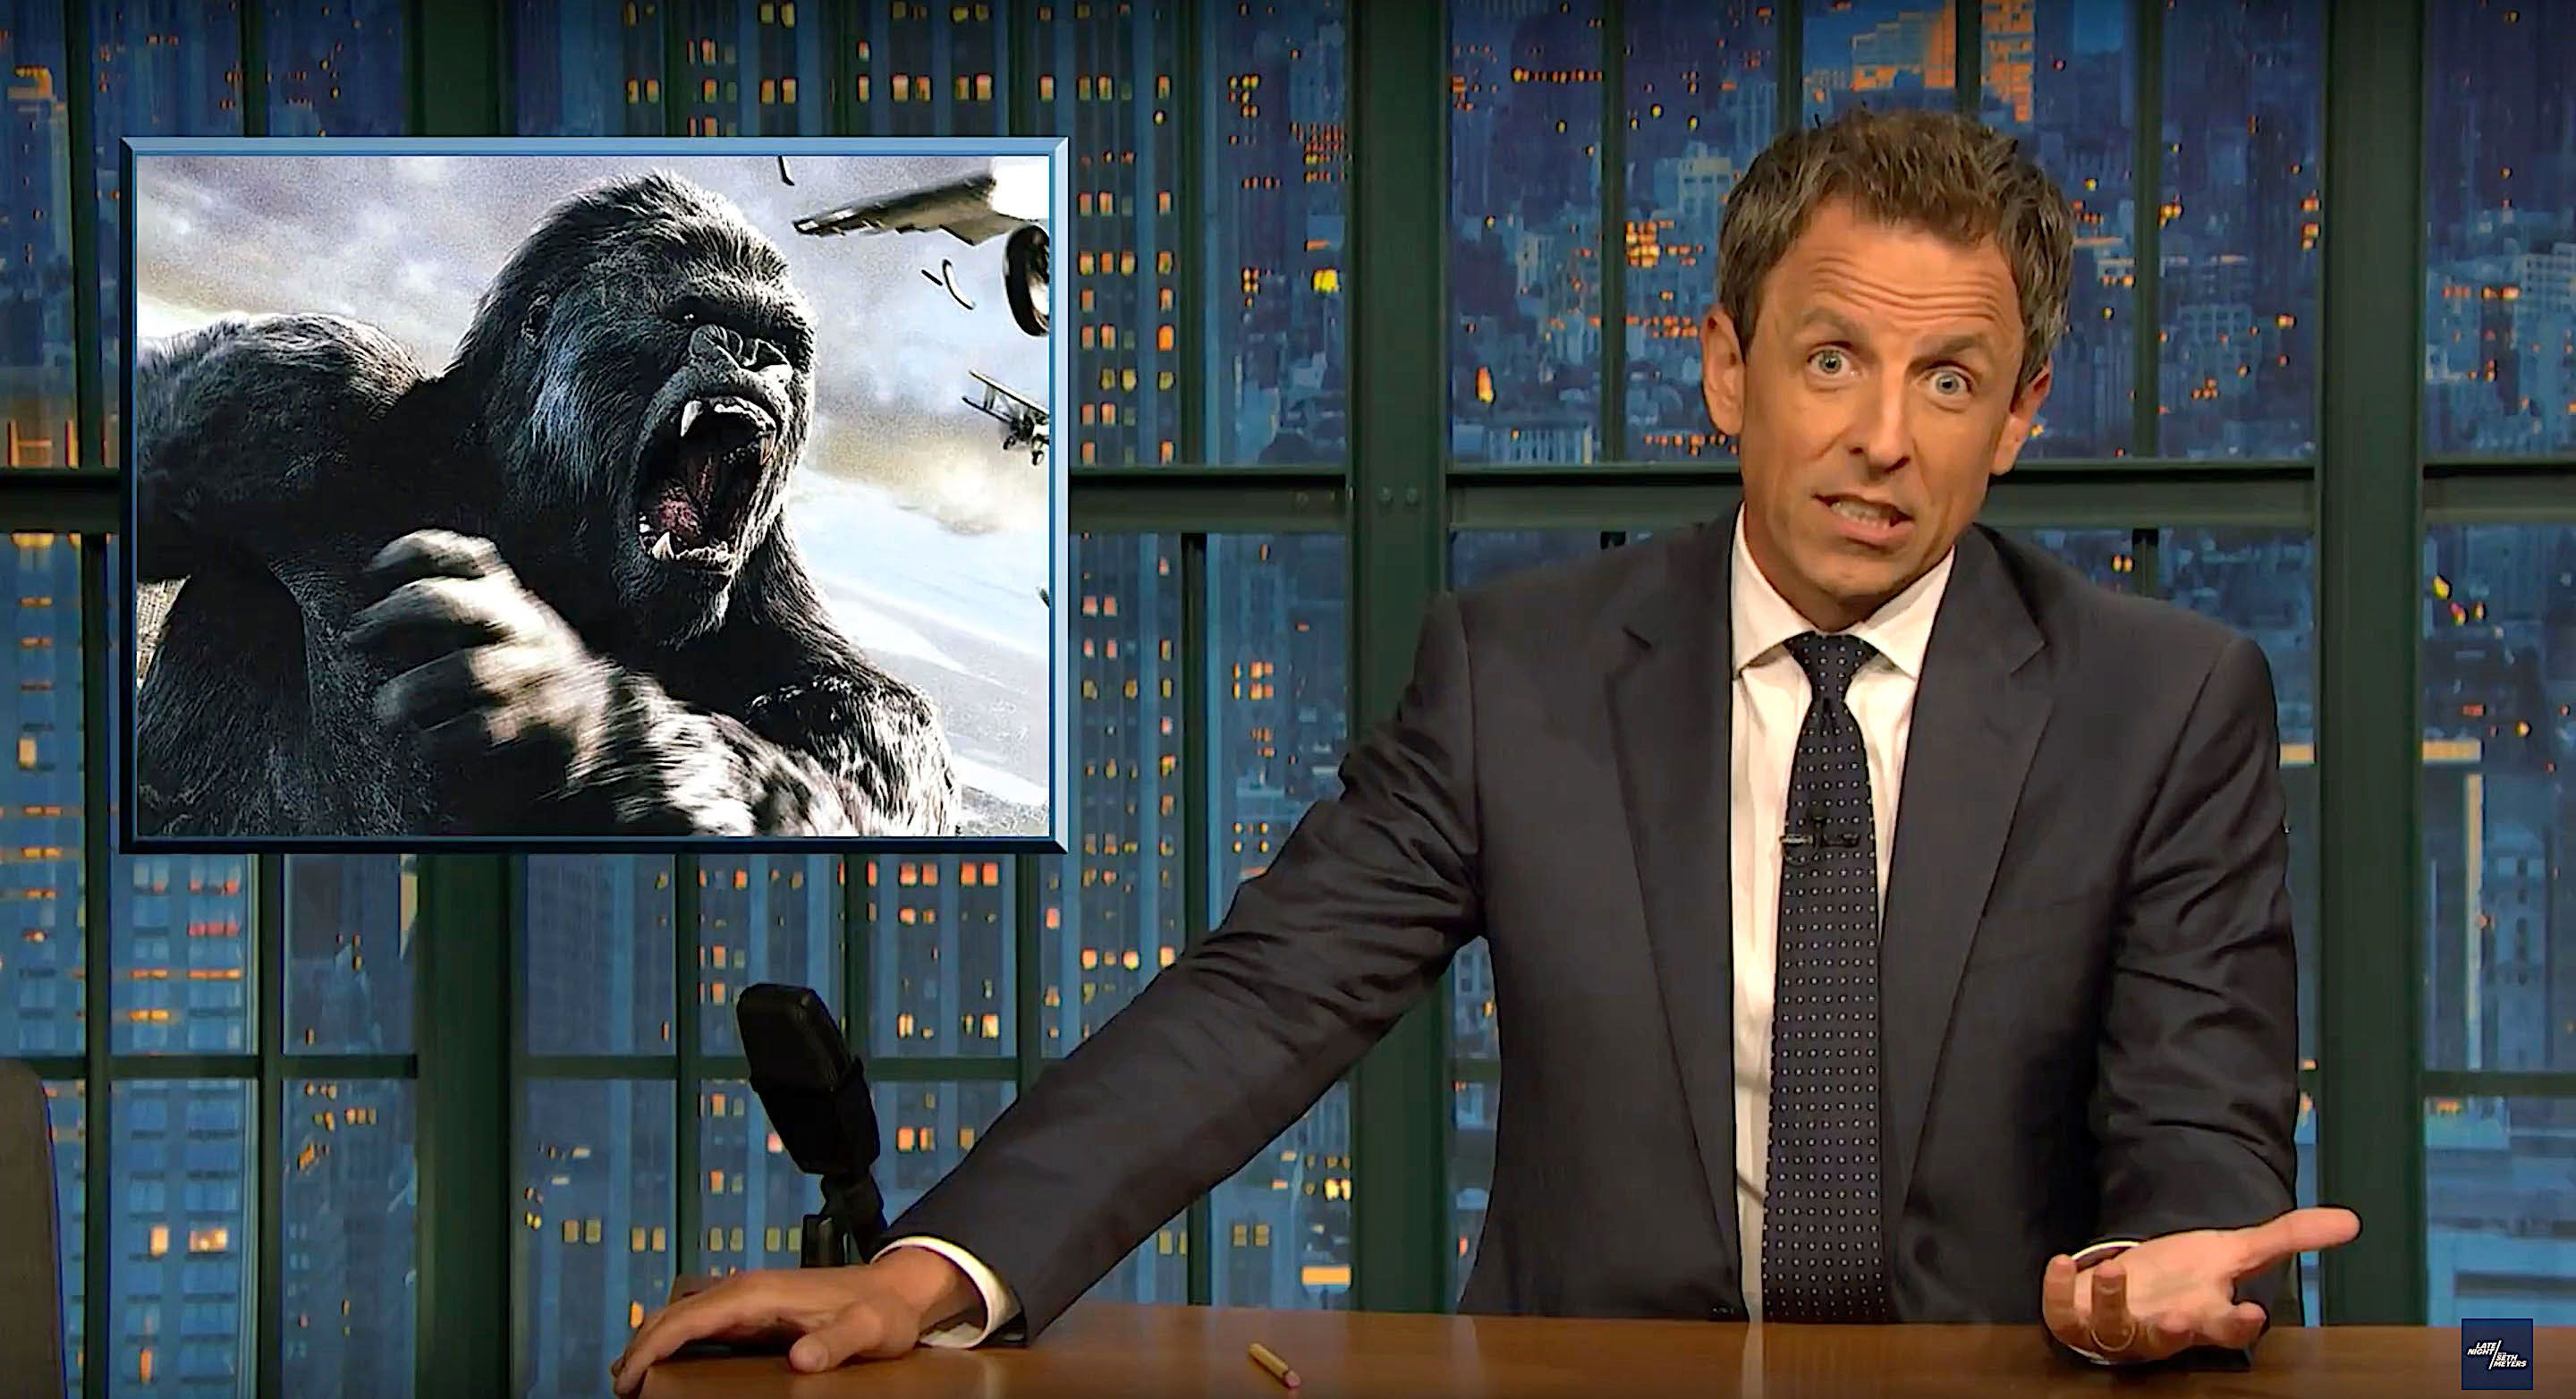 Seth Meyers of Late Night is doubtful of President Donald Trumps ability to handle Hurricane Florence